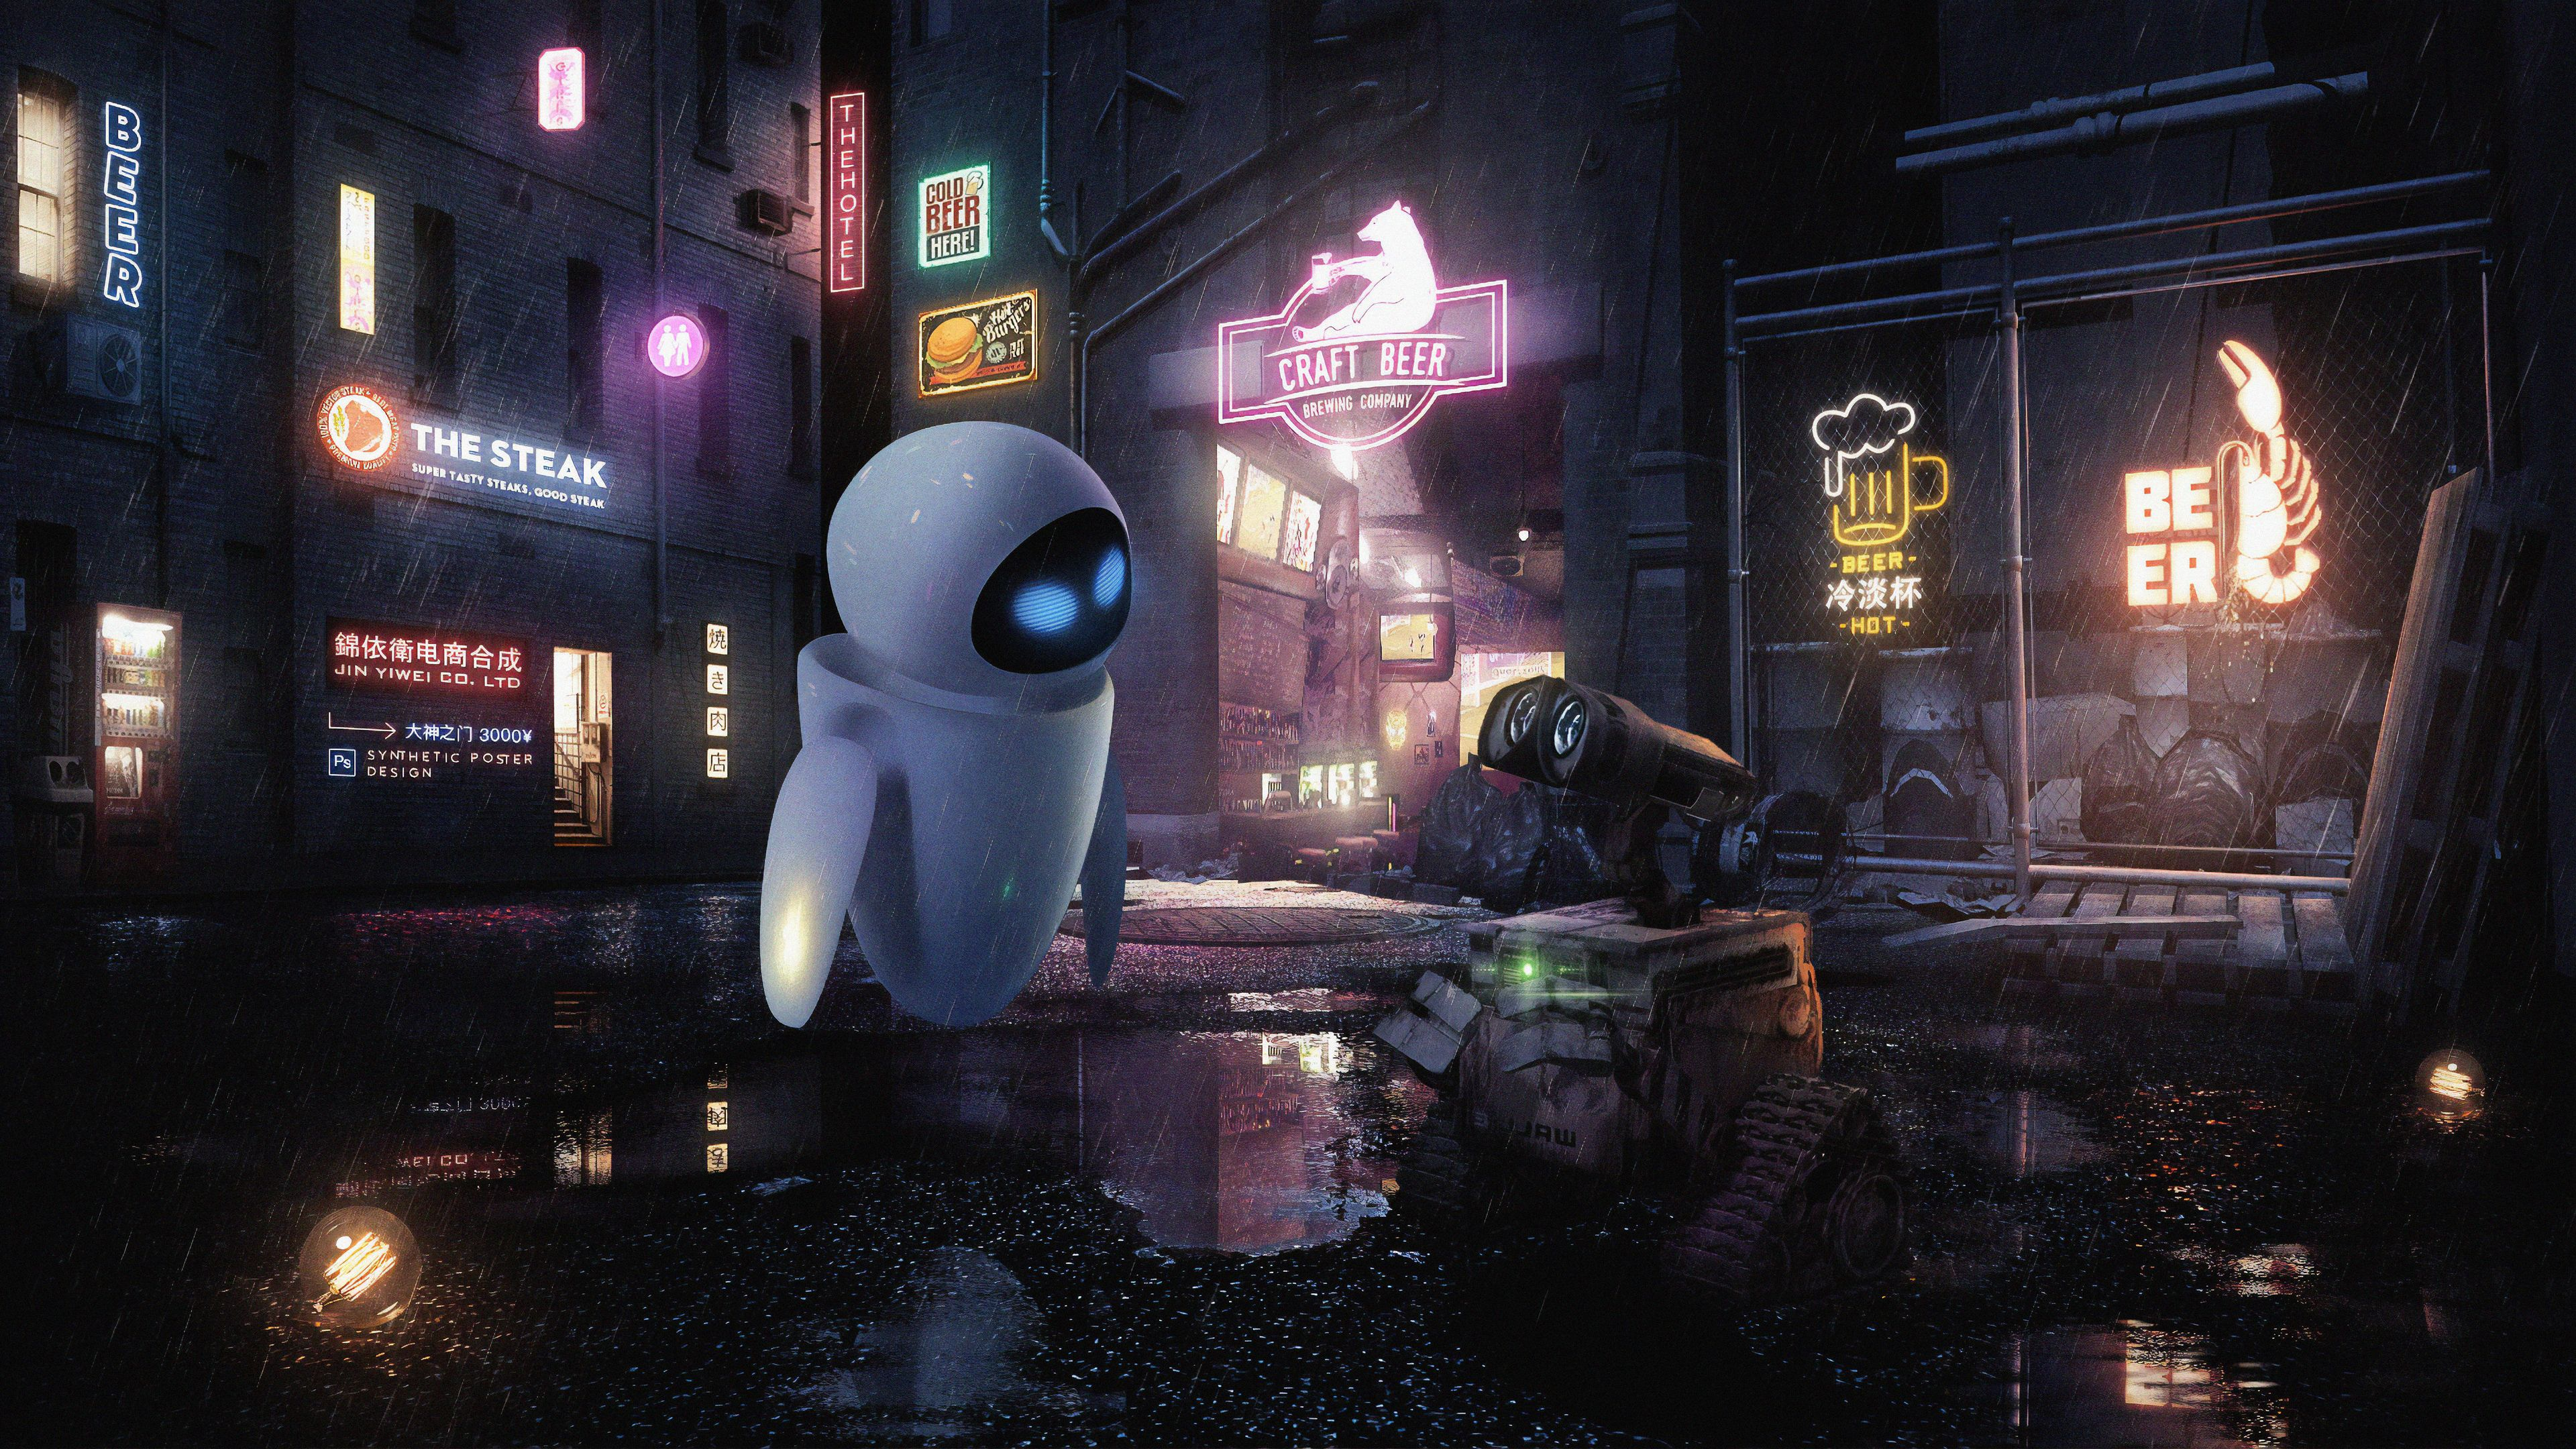 3840x2160 Wall E Robot Pair Movie Wallpaper Movie Wallpapers Wallpaper Animation Background